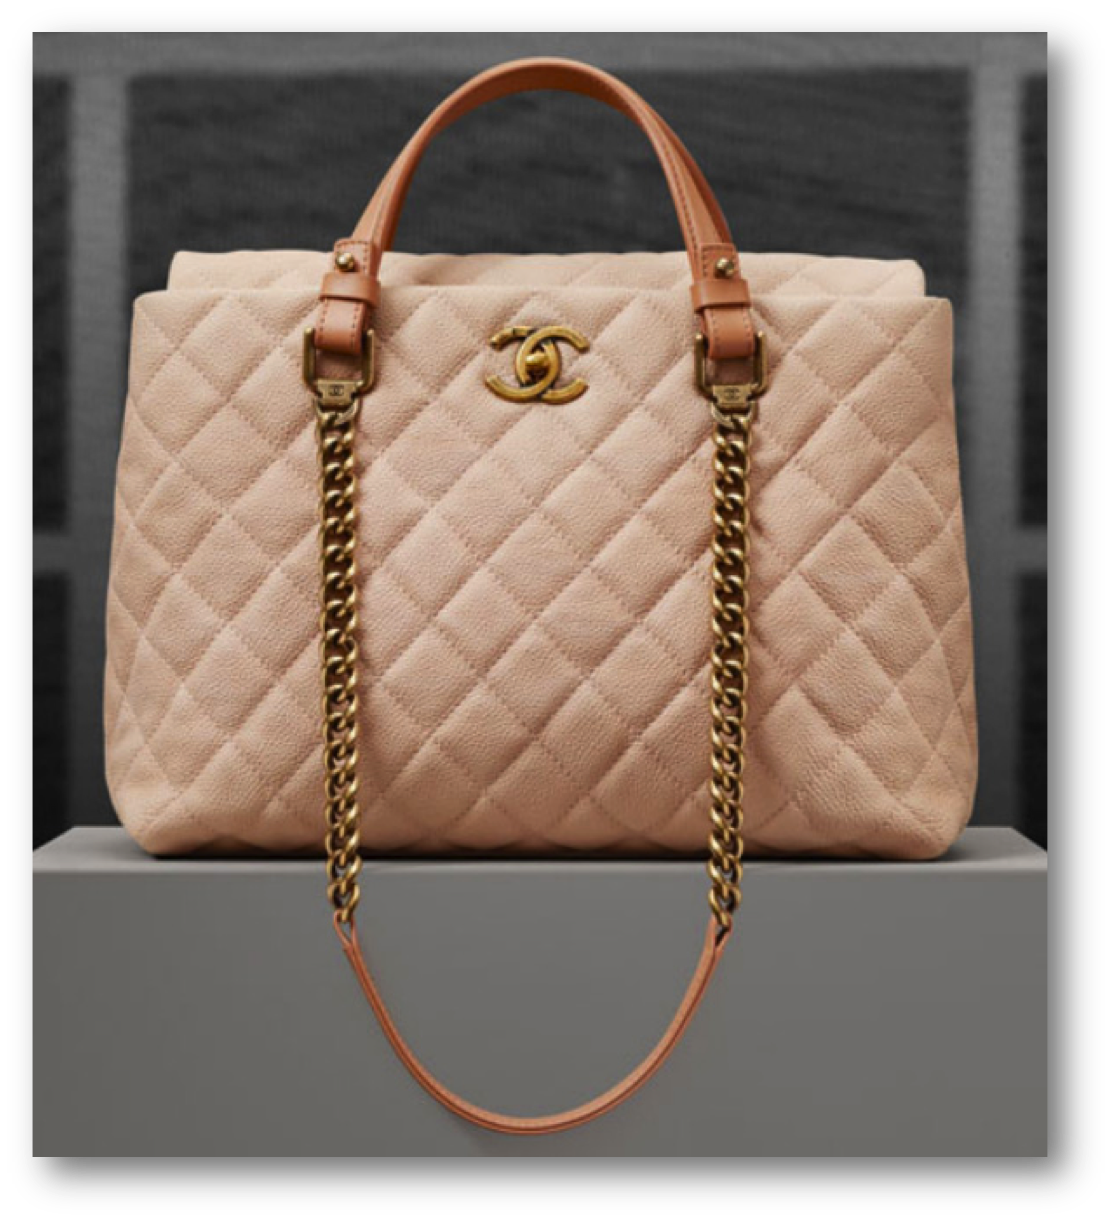 chanel-bag-2013_CHANEL-BAG-TRENDS_THE-CHANEL-BAG-2014-COLLECTION_CHANEL-INSPIRED-TRENDS_CHEAP-CHANEL-BAGS_NEW-CHANEL-BAG_COLOURFUL-CHANEL-BAG-ACCESSORIES